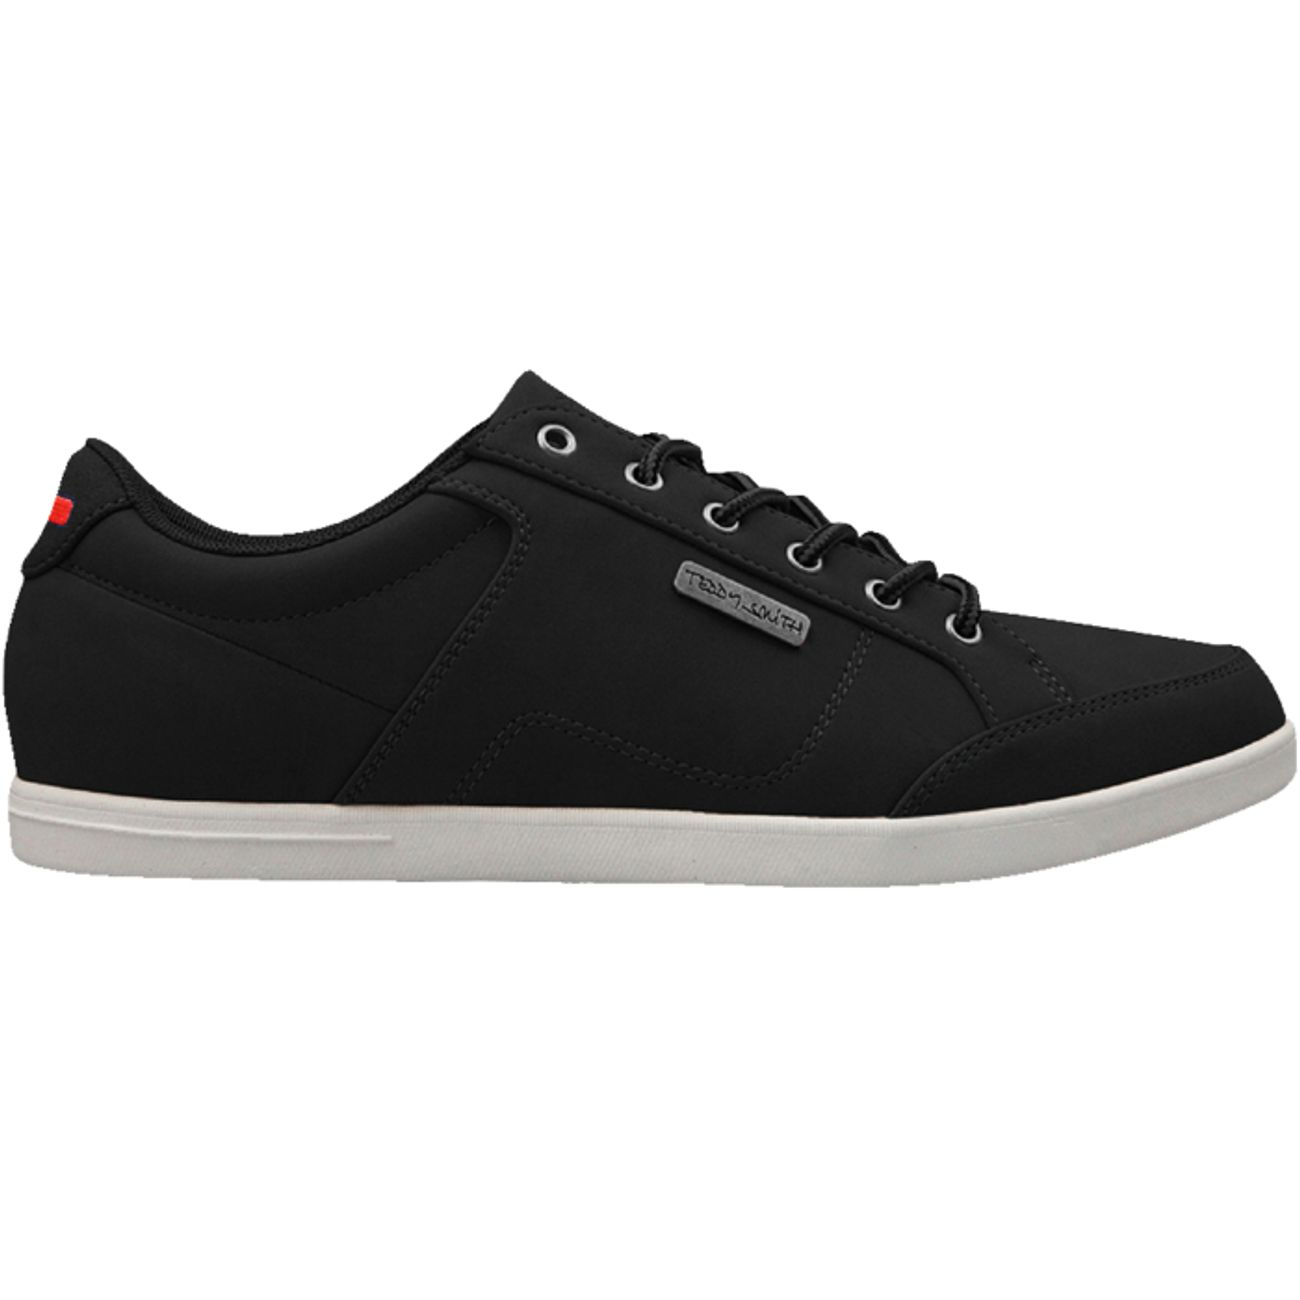 CHAUSSURES BASSES Loisirs homme TEDDY SMITH TINO